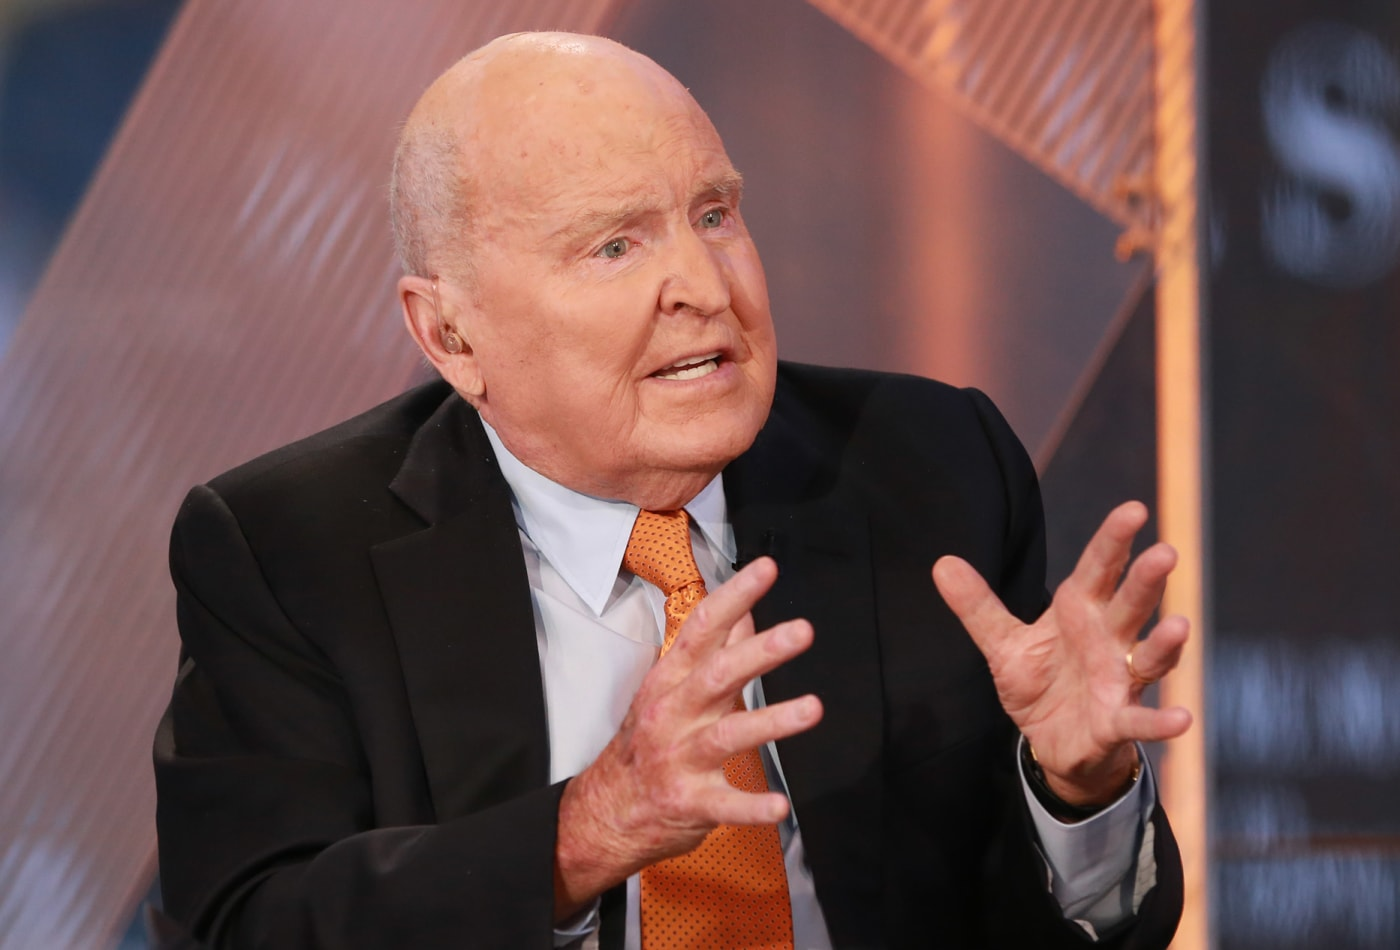 EL EX CEO DE GENERAL ELECTRIC, JACK WELCH, FALLECIÓ A LOS 84 AÑOS